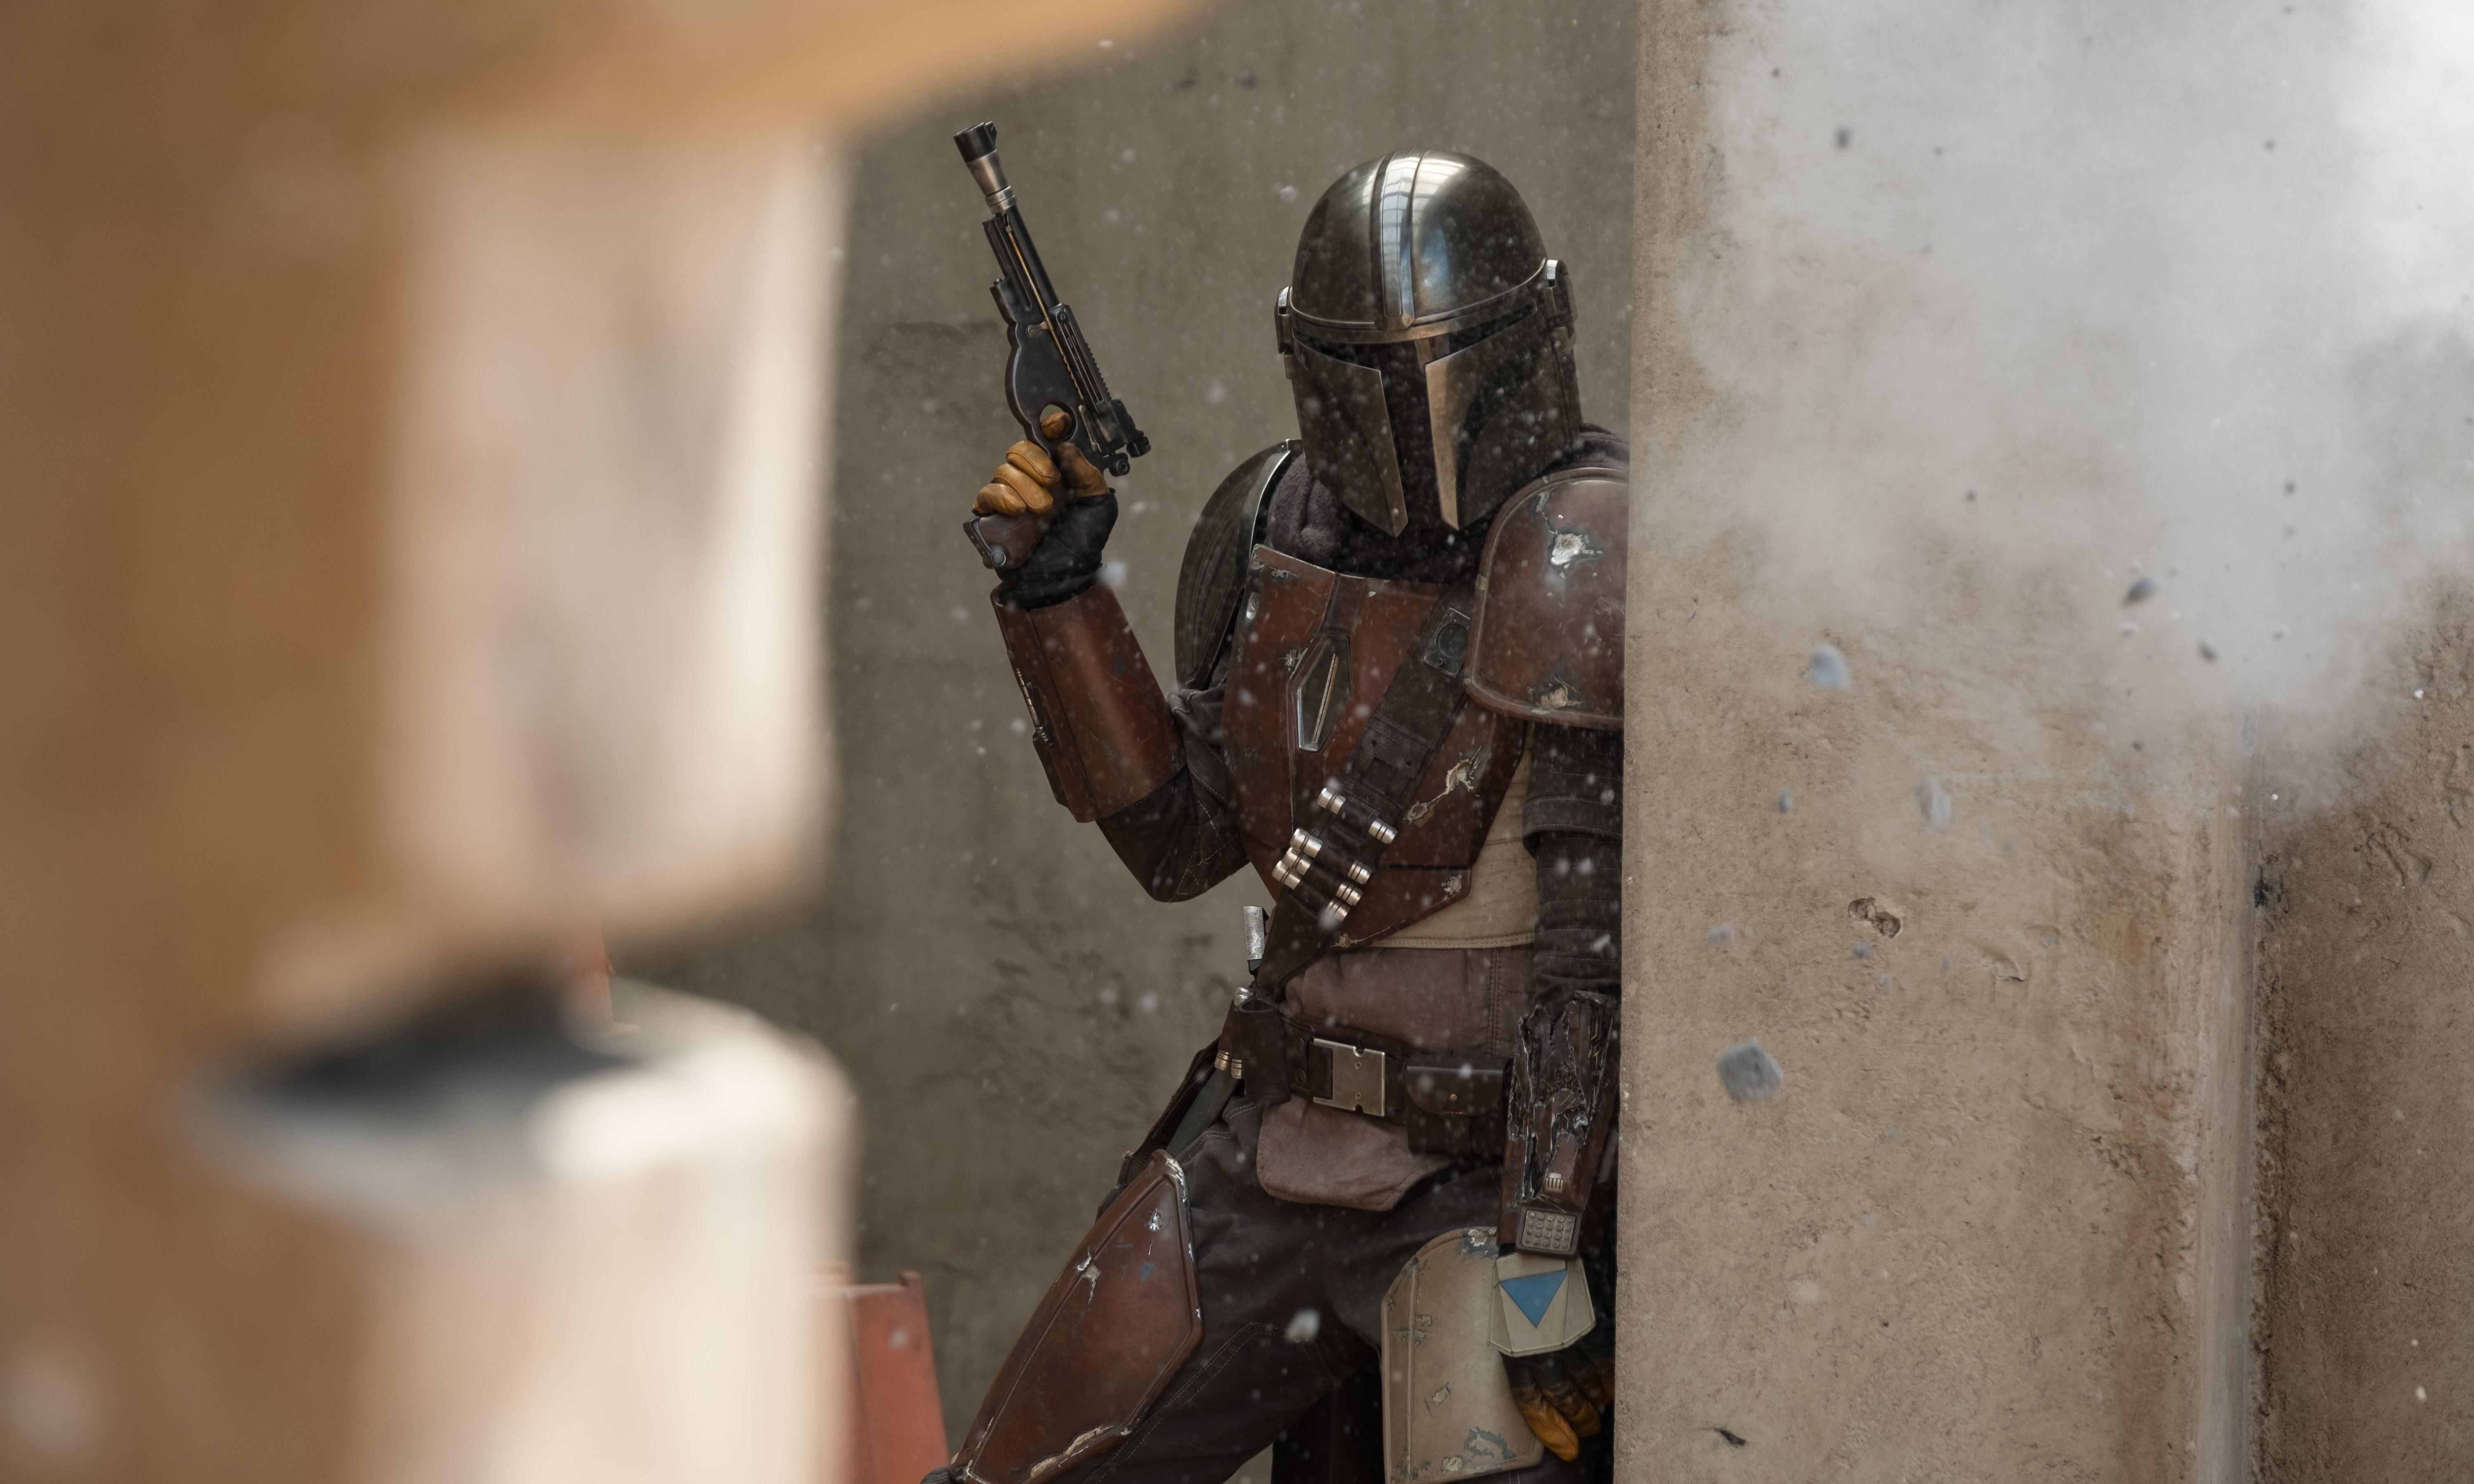 The Mandalorian: Disney unveils trailer for Star Wars TV series